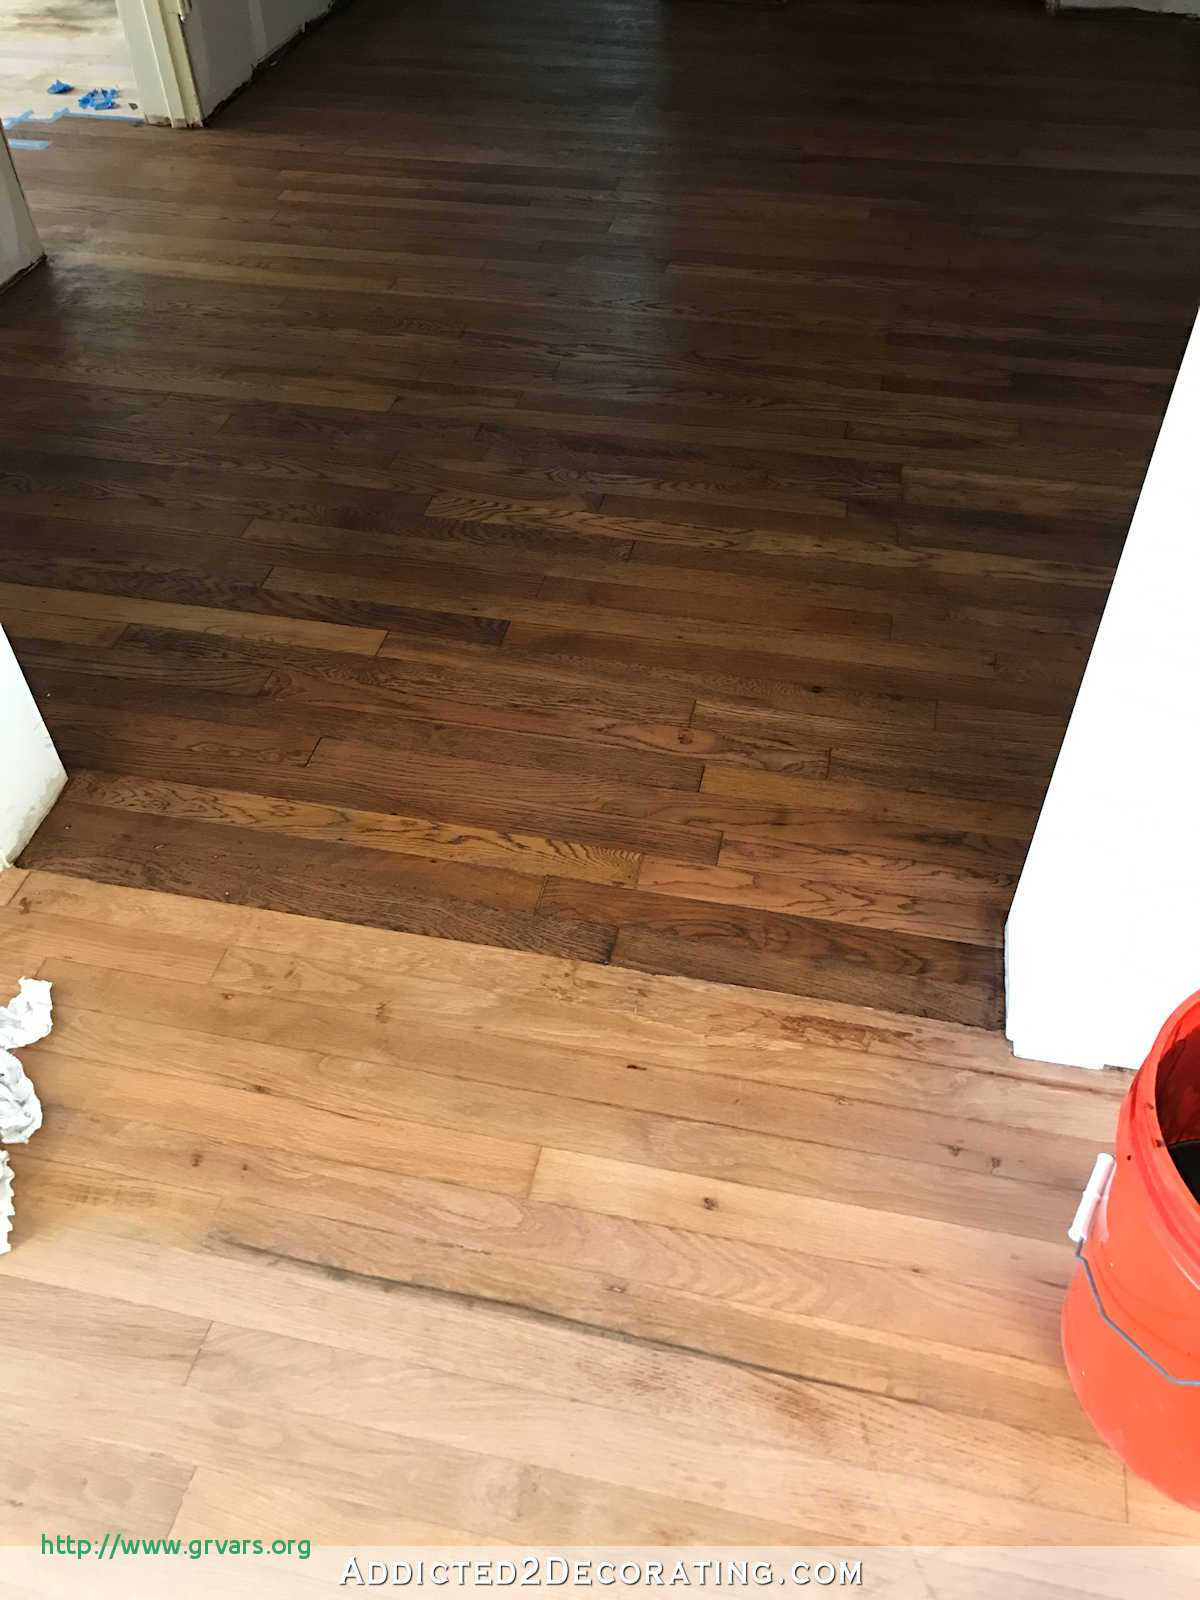 bona ultimate hardwood floor care kit of 20 impressionnant how to take care of hardwood floors with dogs inside staining red oak hardwood floors 2 tape off one section at a time for